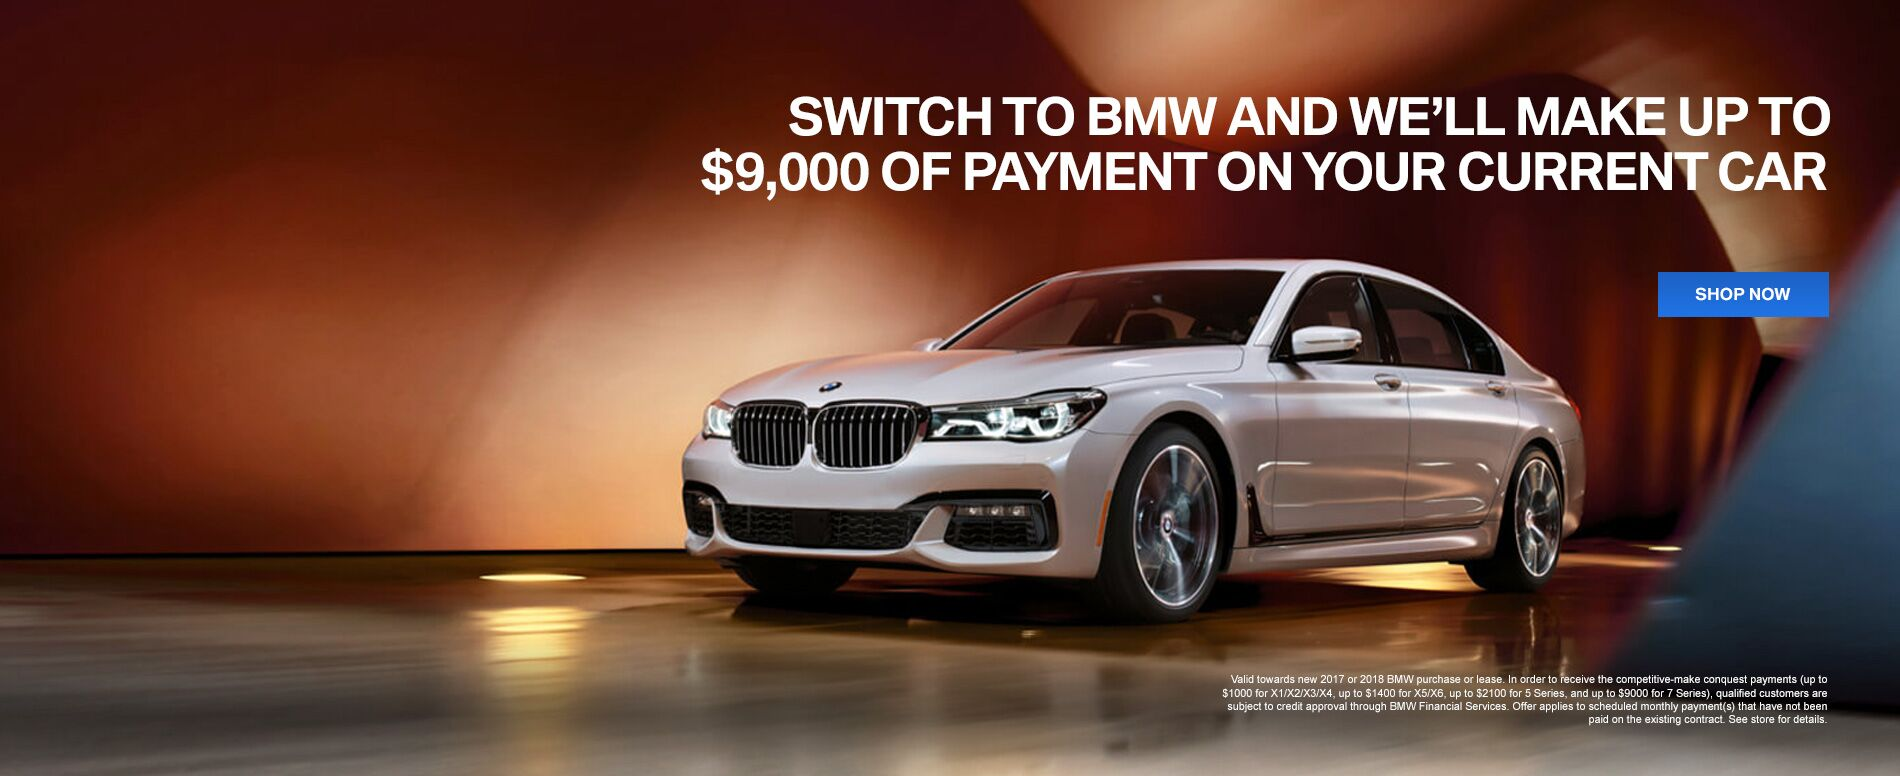 Switch to BMW